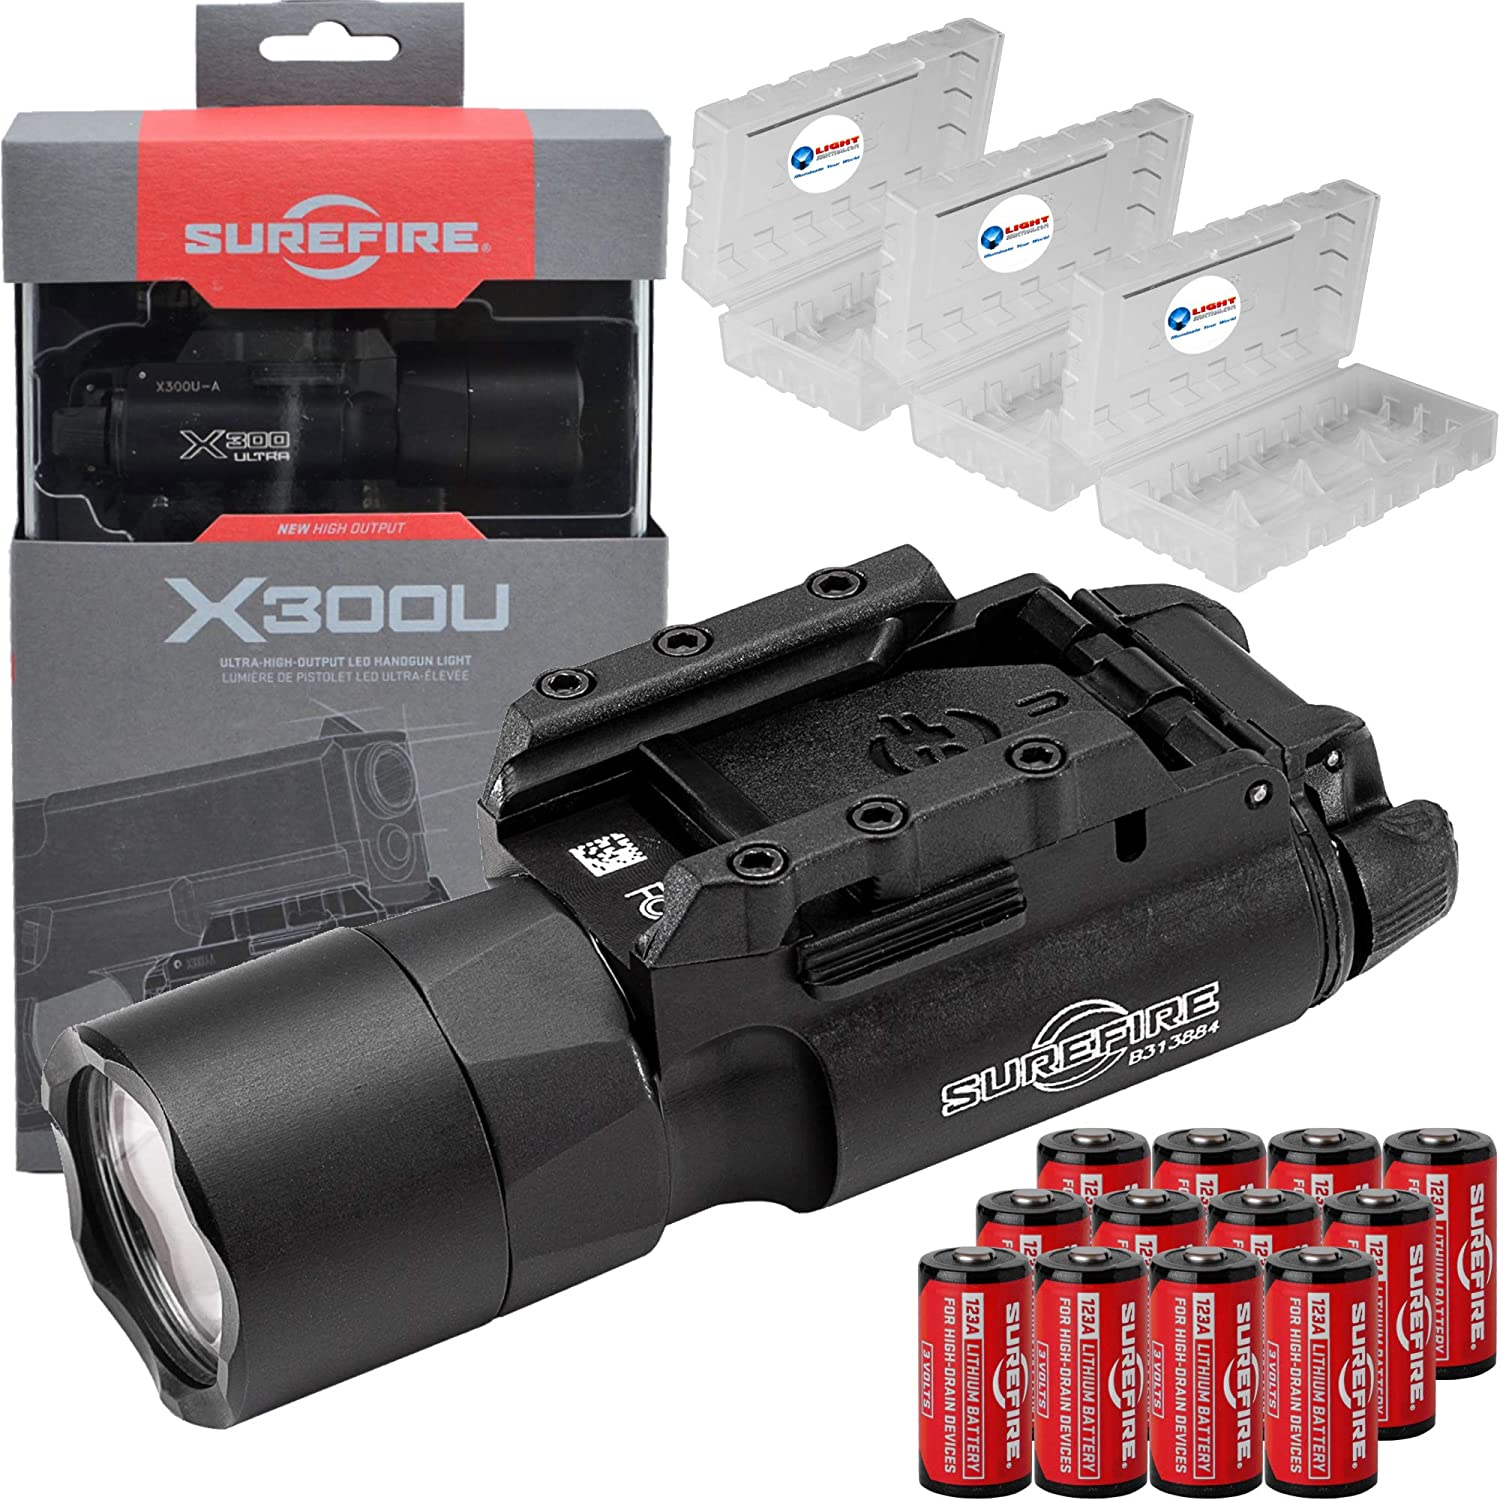 SureFire X300U-A Ultra High Output 1000 Lumens LED Weapon Lightwith 12 Extra CR123A Batteries and 3 Lightjunction Battery Cases